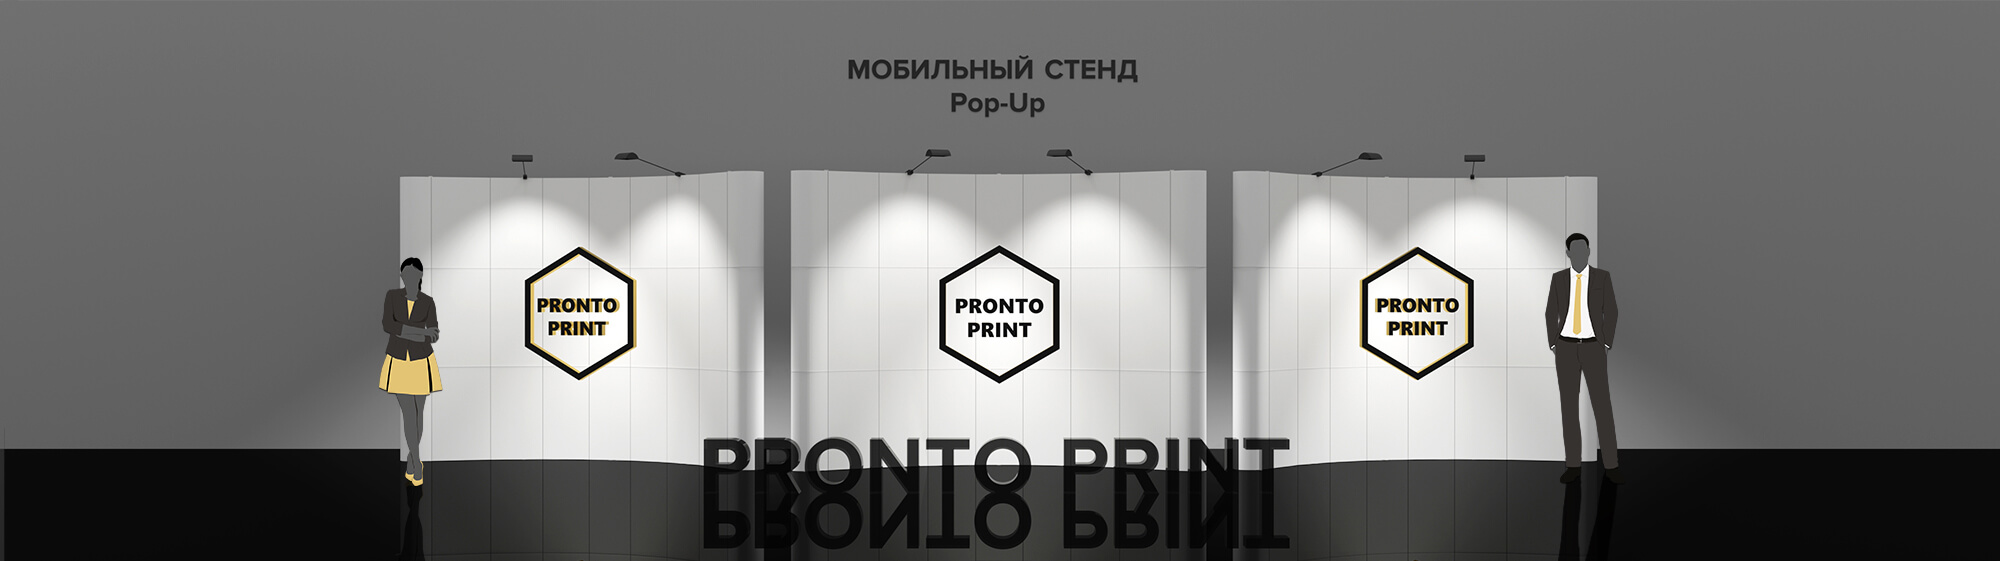 pronto_print_Pop-up